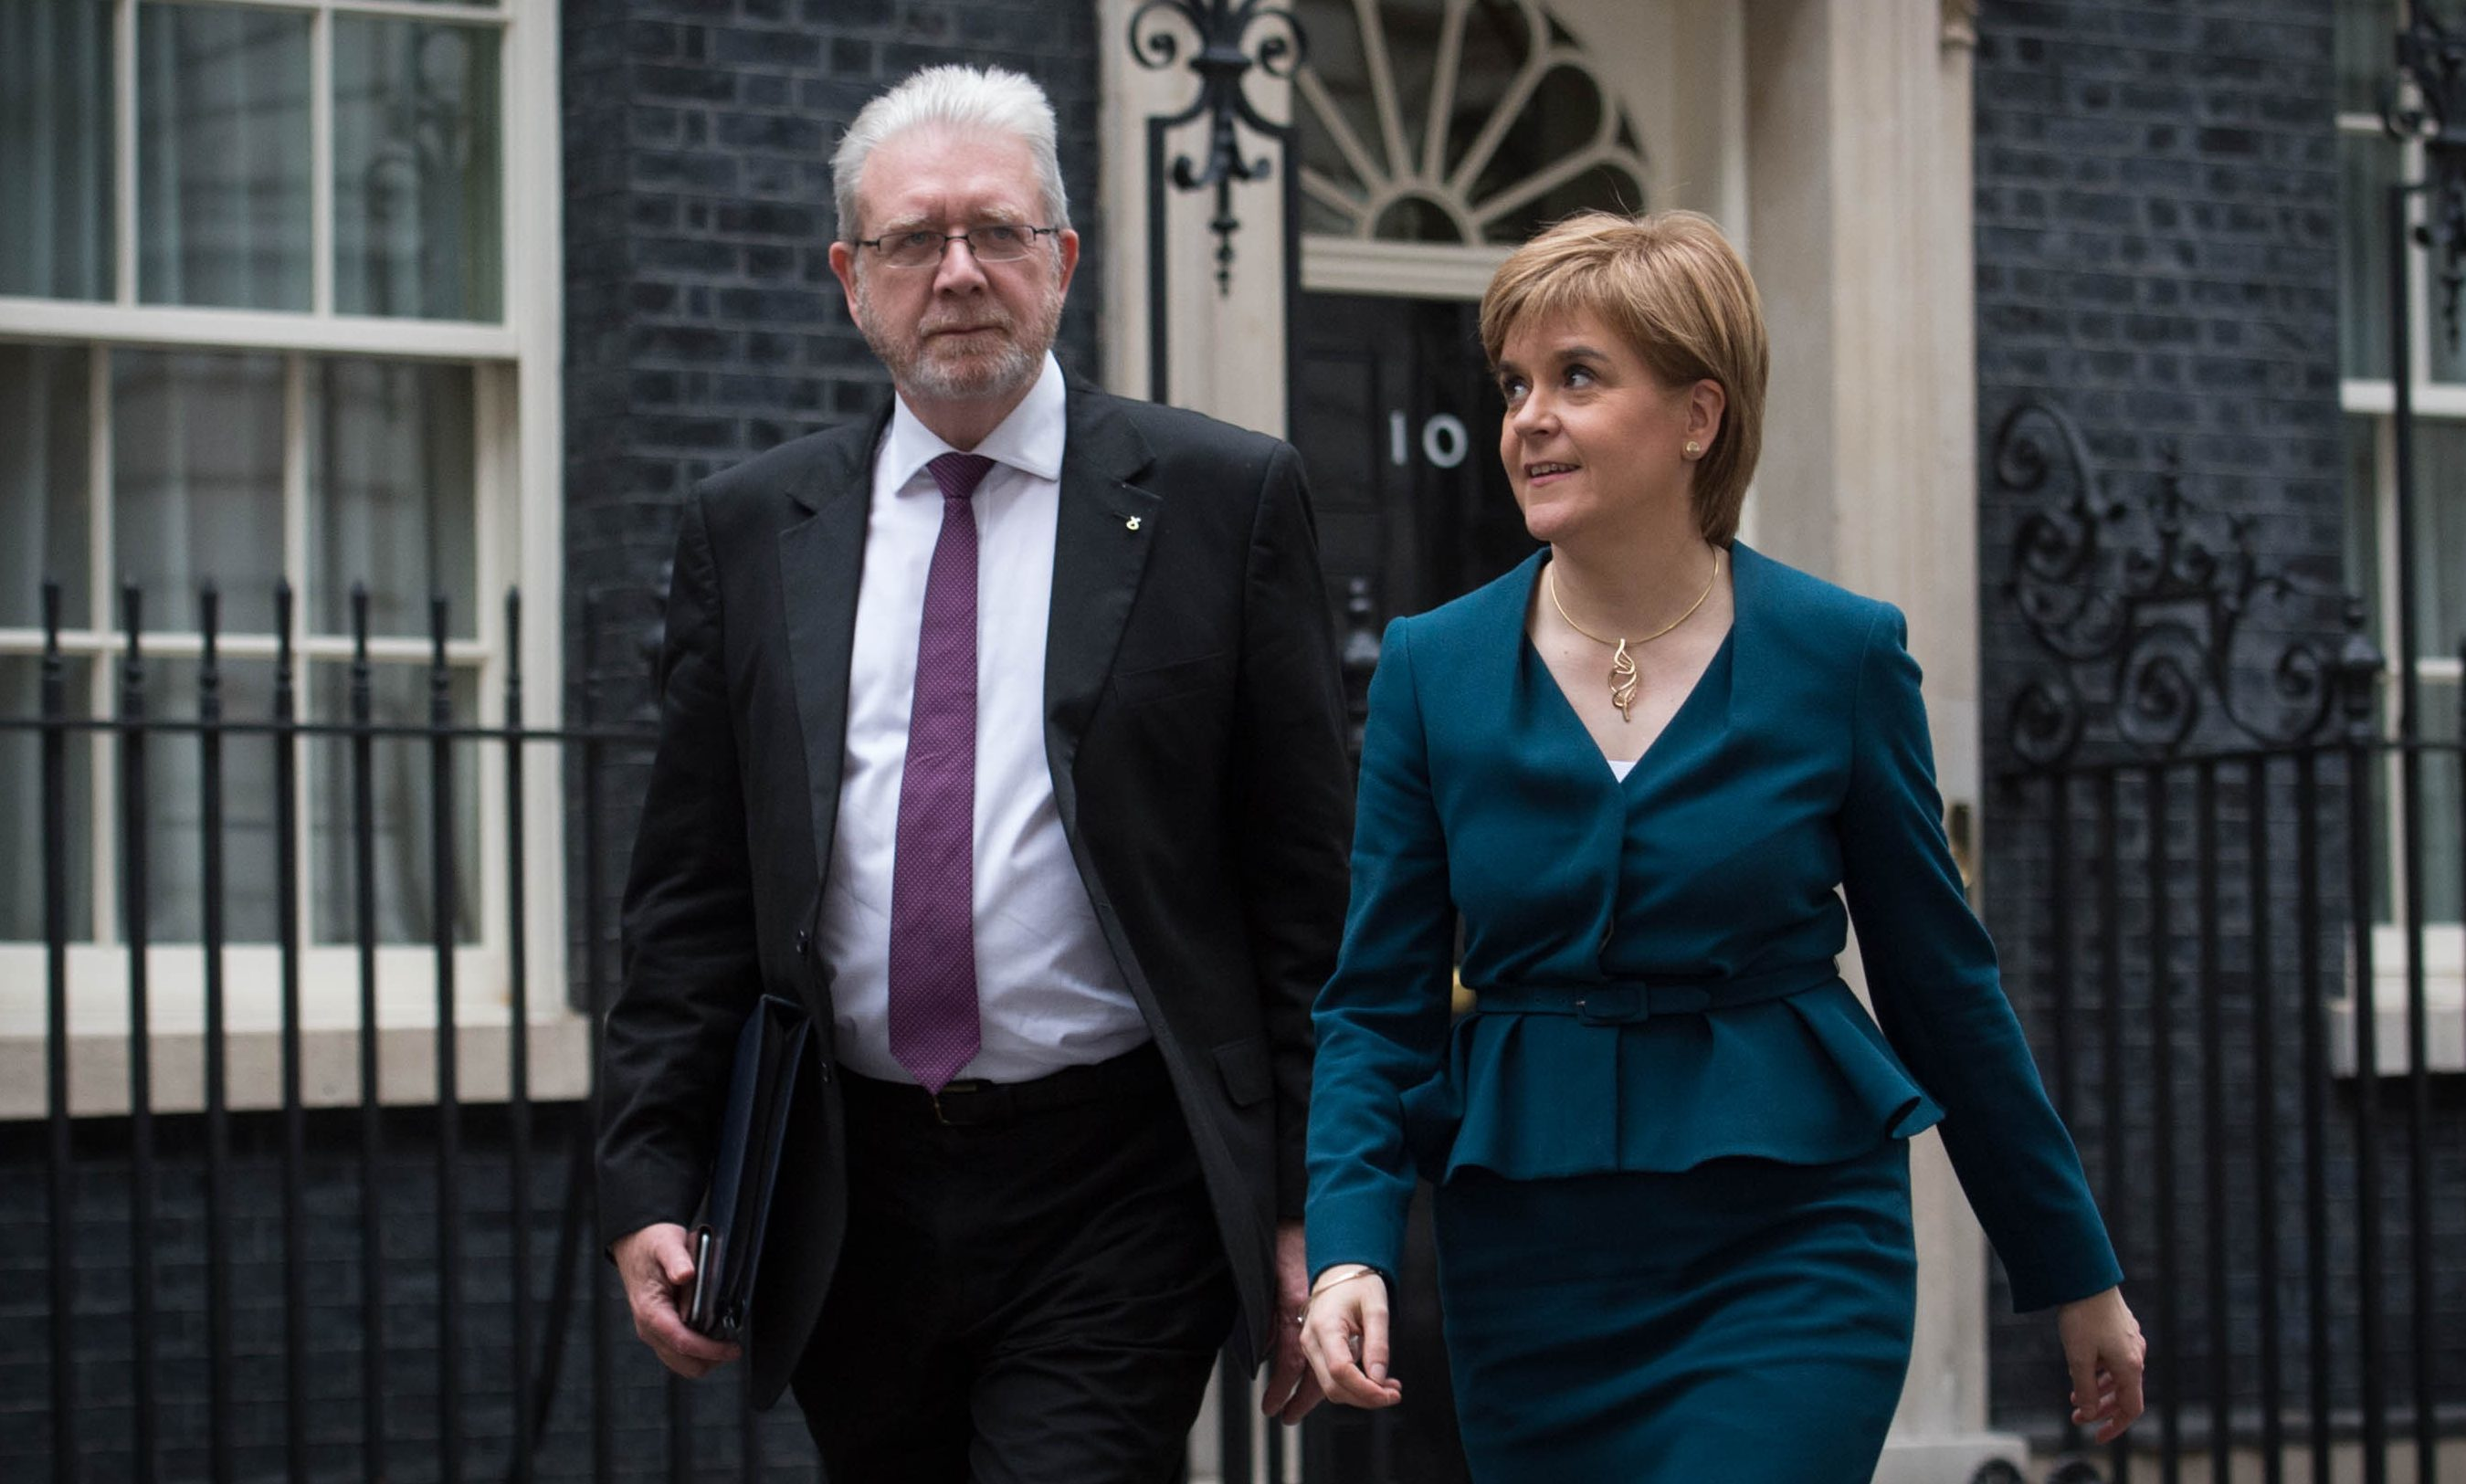 Michael Russell with Nicola Sturgeon